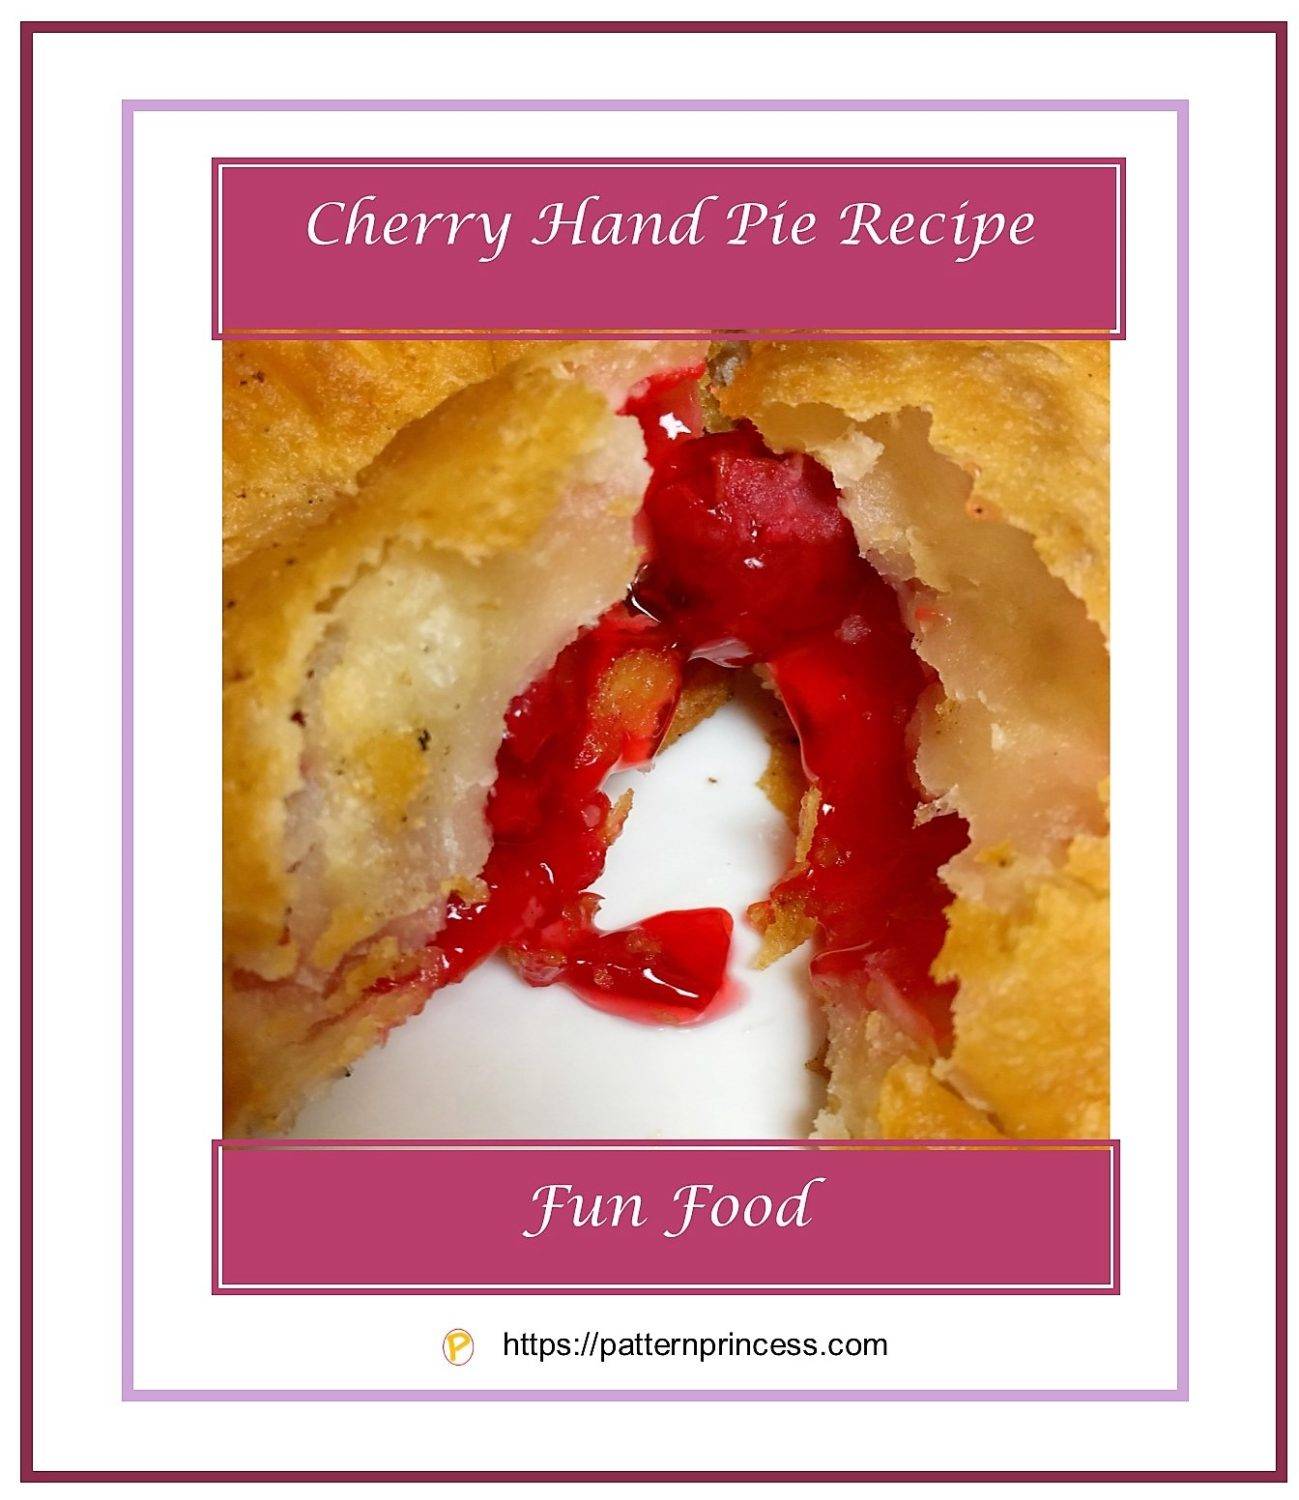 Cherry Hand Pie Recipe 1